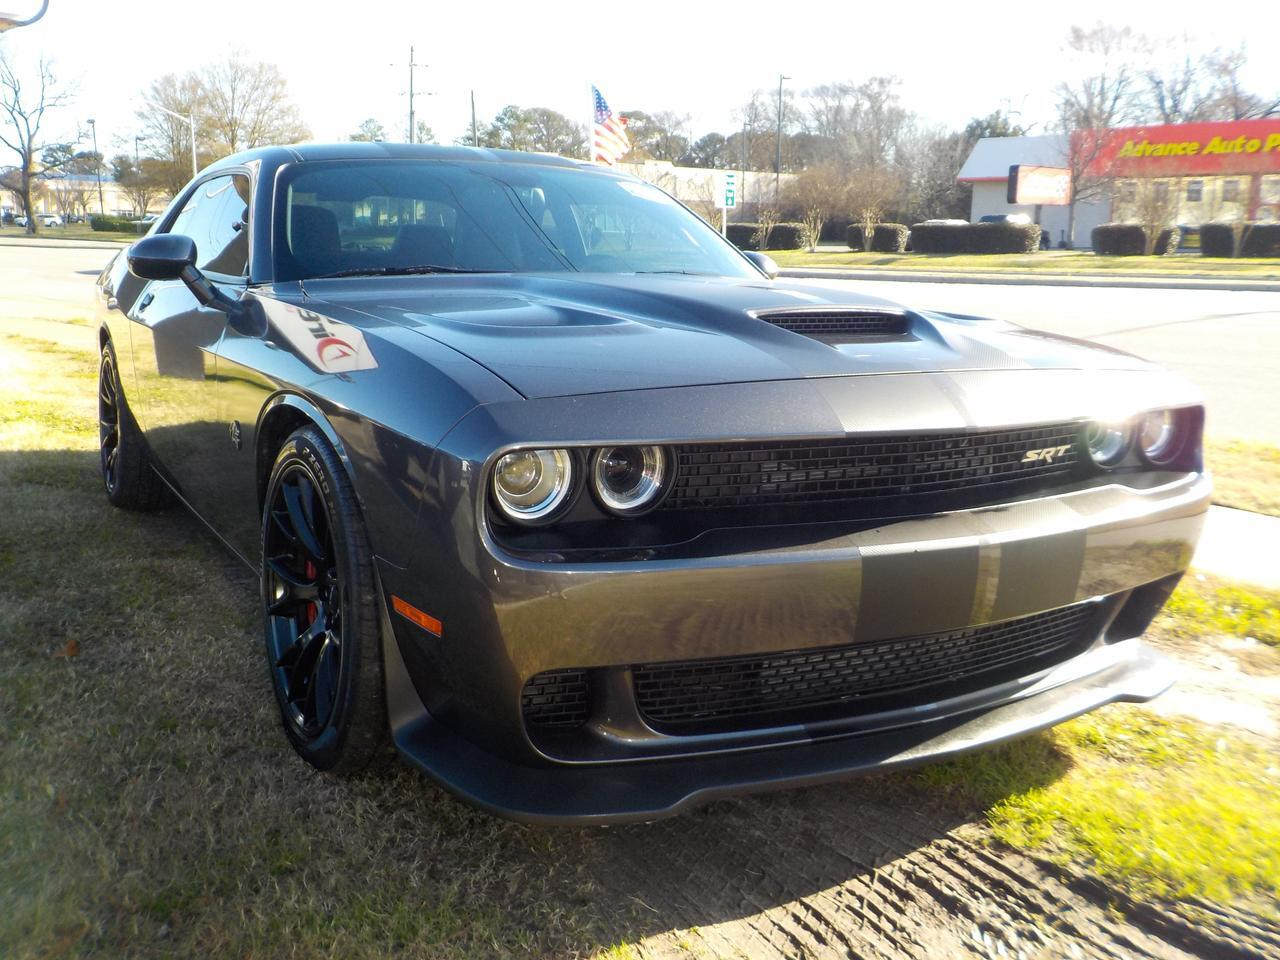 2016 DODGE CHARGER SRT HELLCAT HEMI, ONE OWNER, HEATED & COOLED SEATS, LEATHER, REMOTE START, SUNROOF,ONLY 24K MILES! Virginia Beach VA